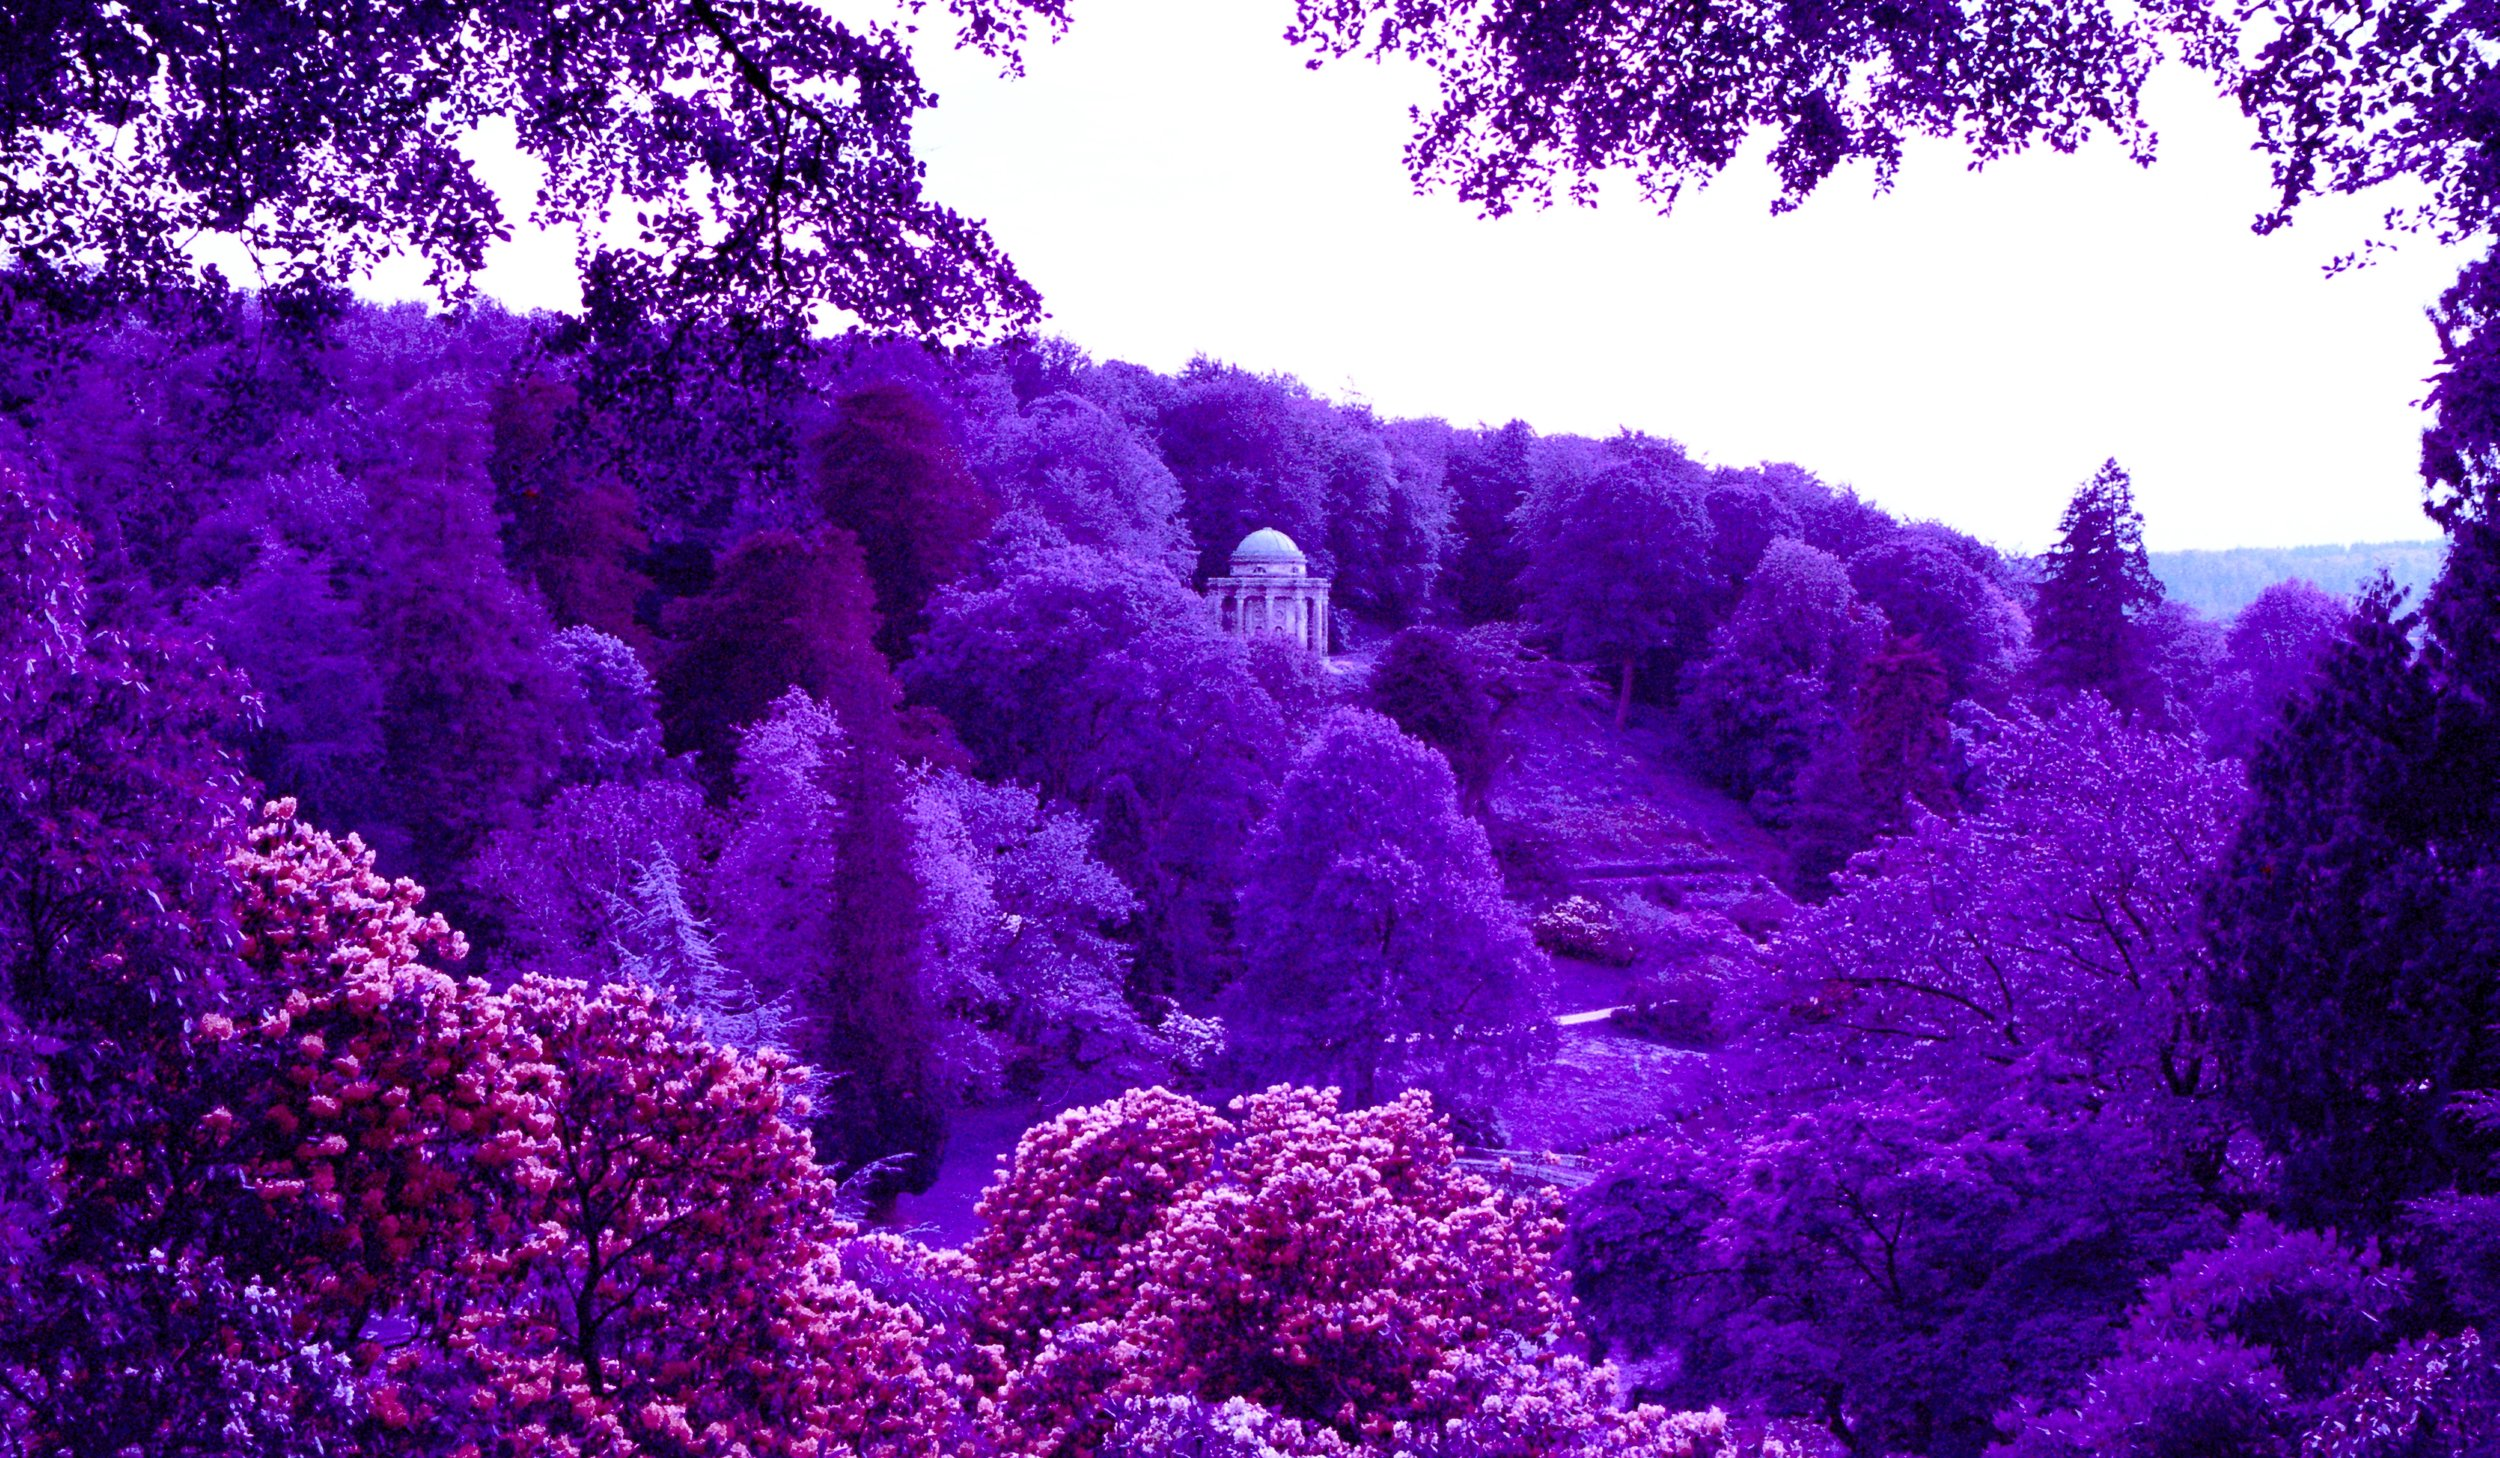 If you want purple then go for foliage!